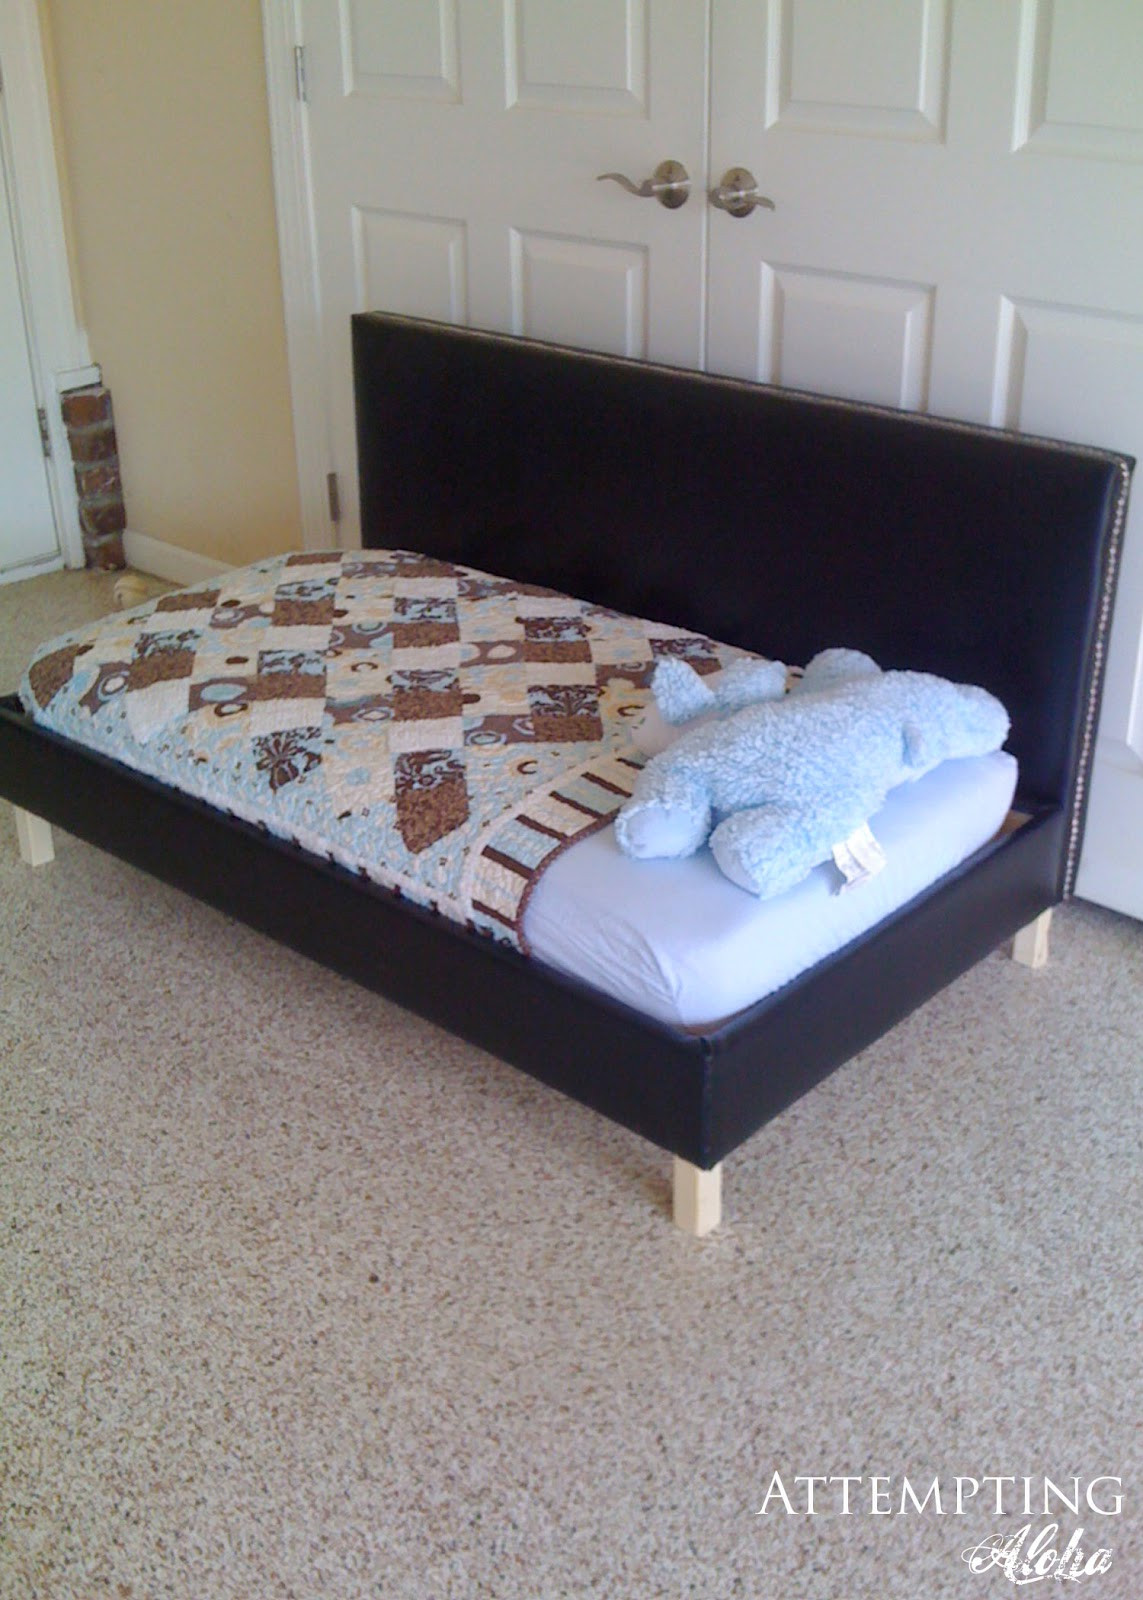 Best ideas about Kids Bed DIY . Save or Pin Now.